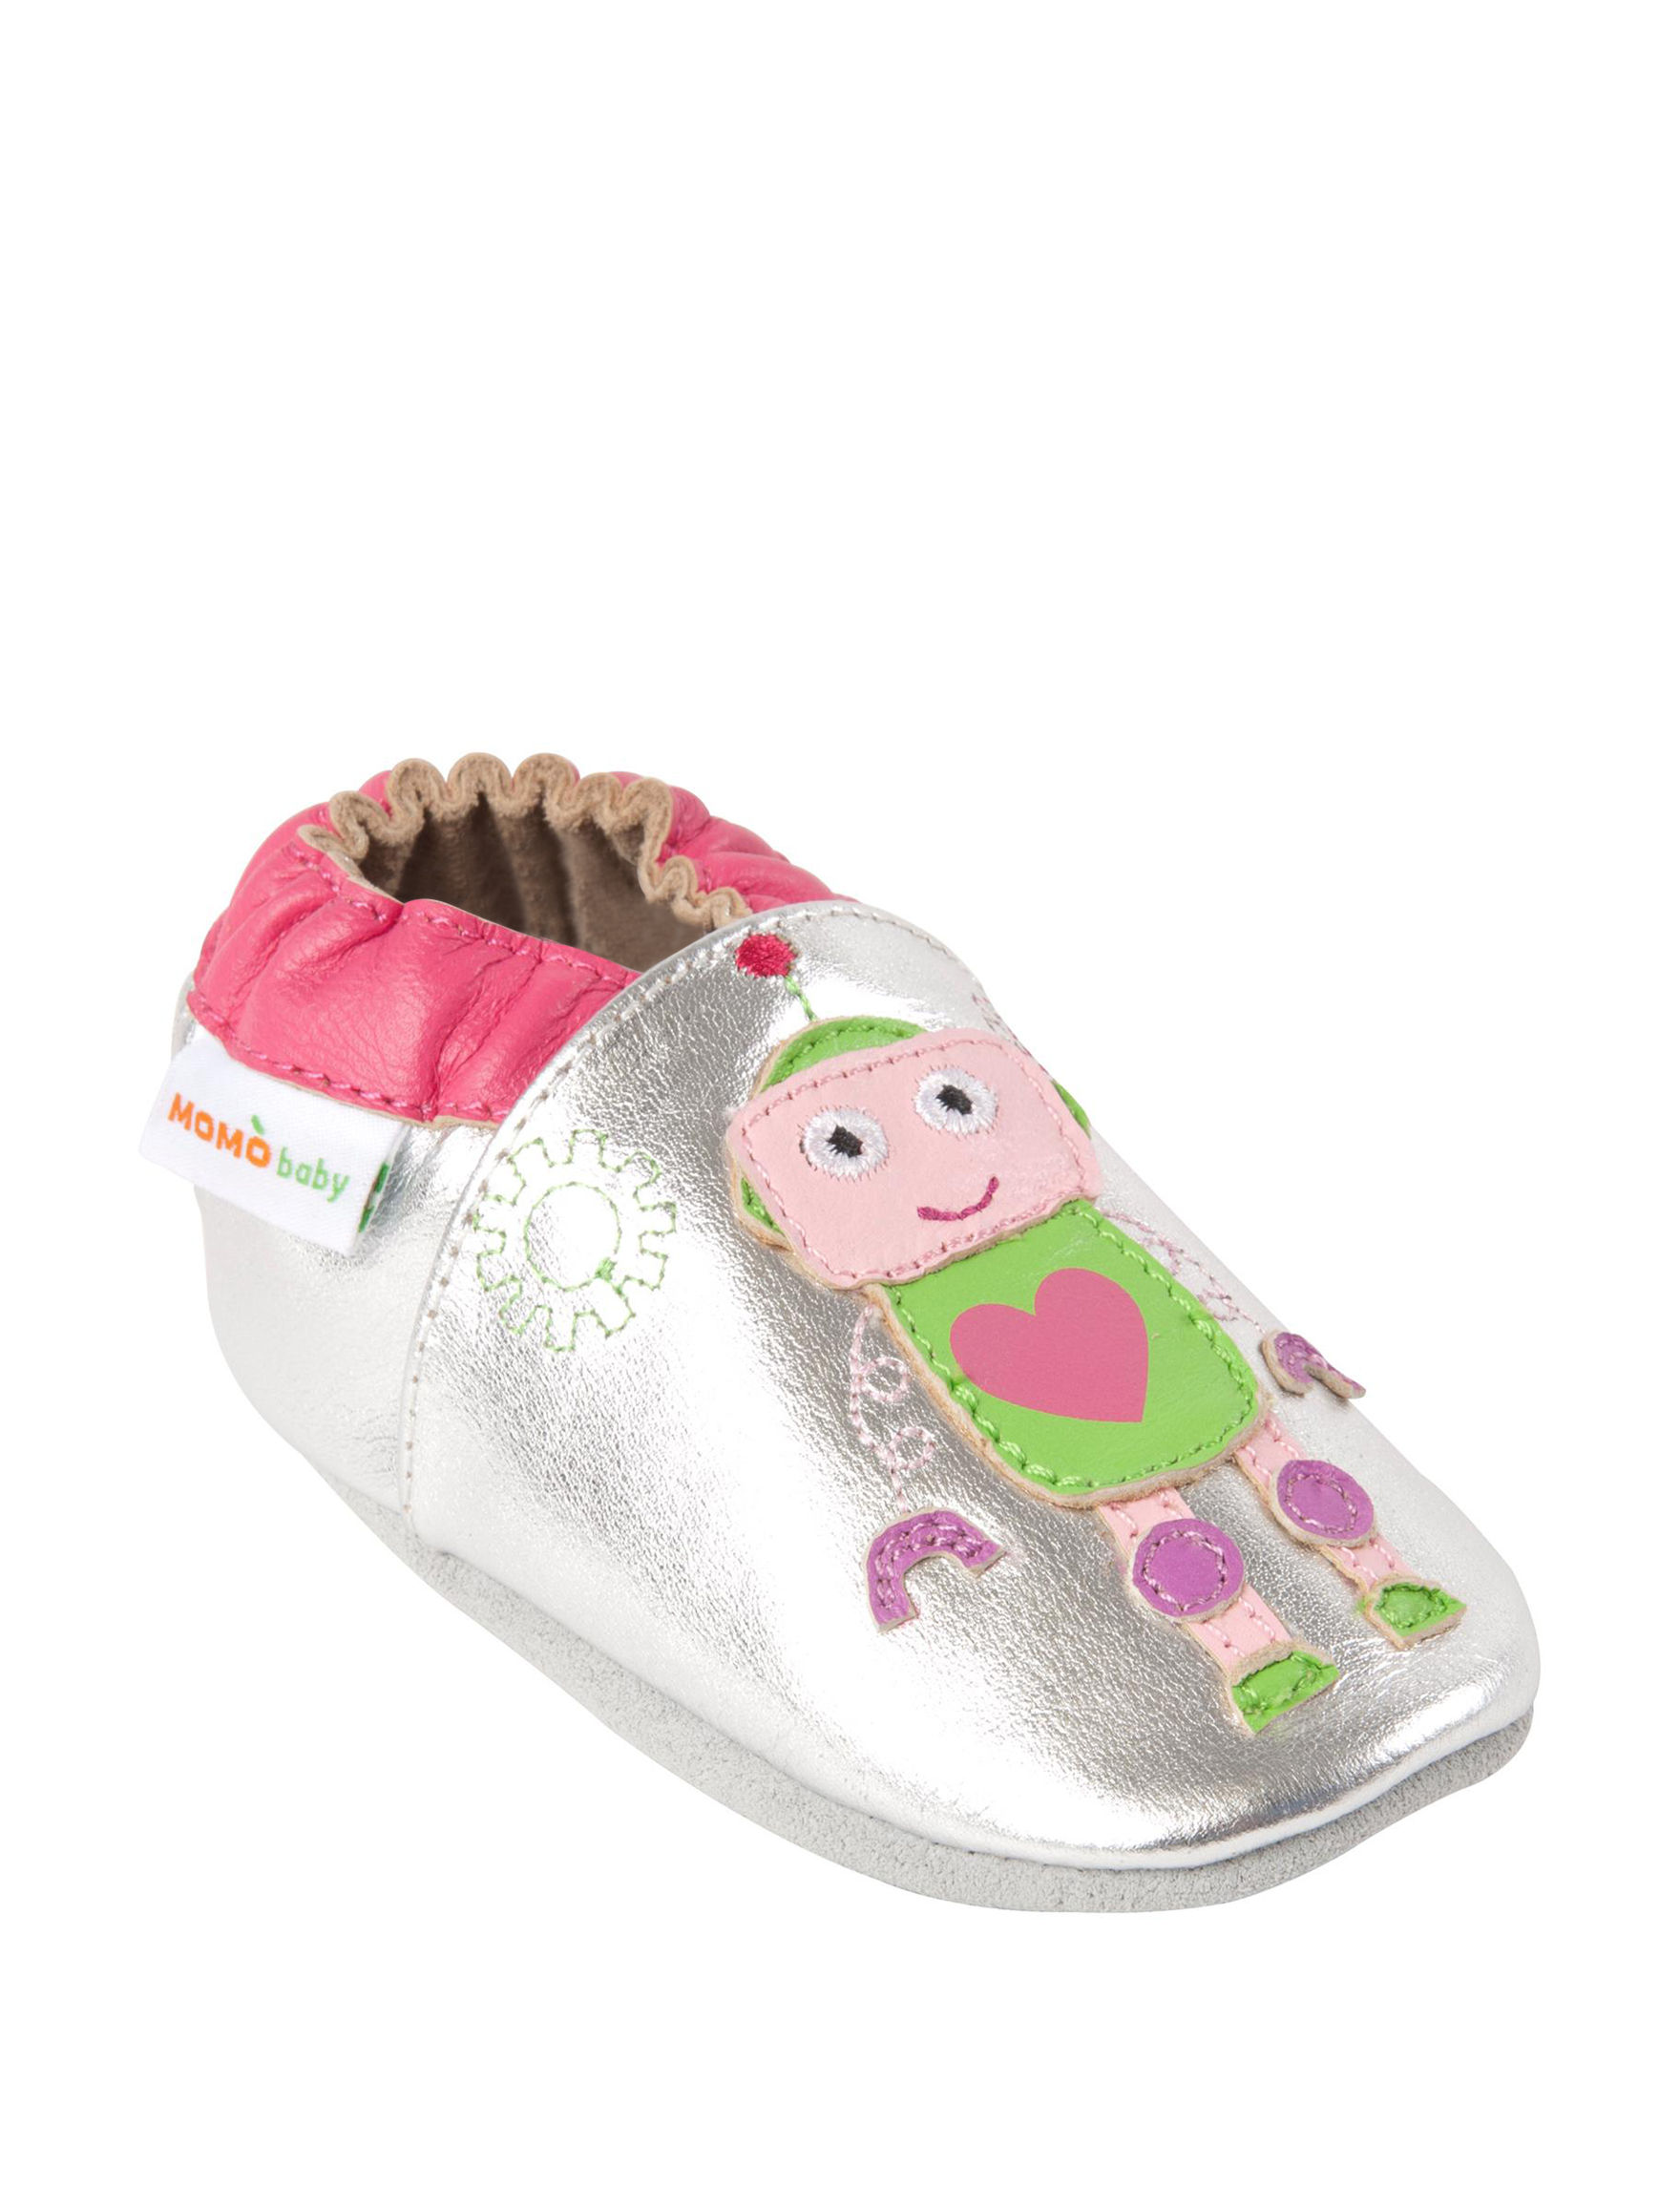 Momo Baby Girly Gears Crib Shoes Baby 6 24 Mos